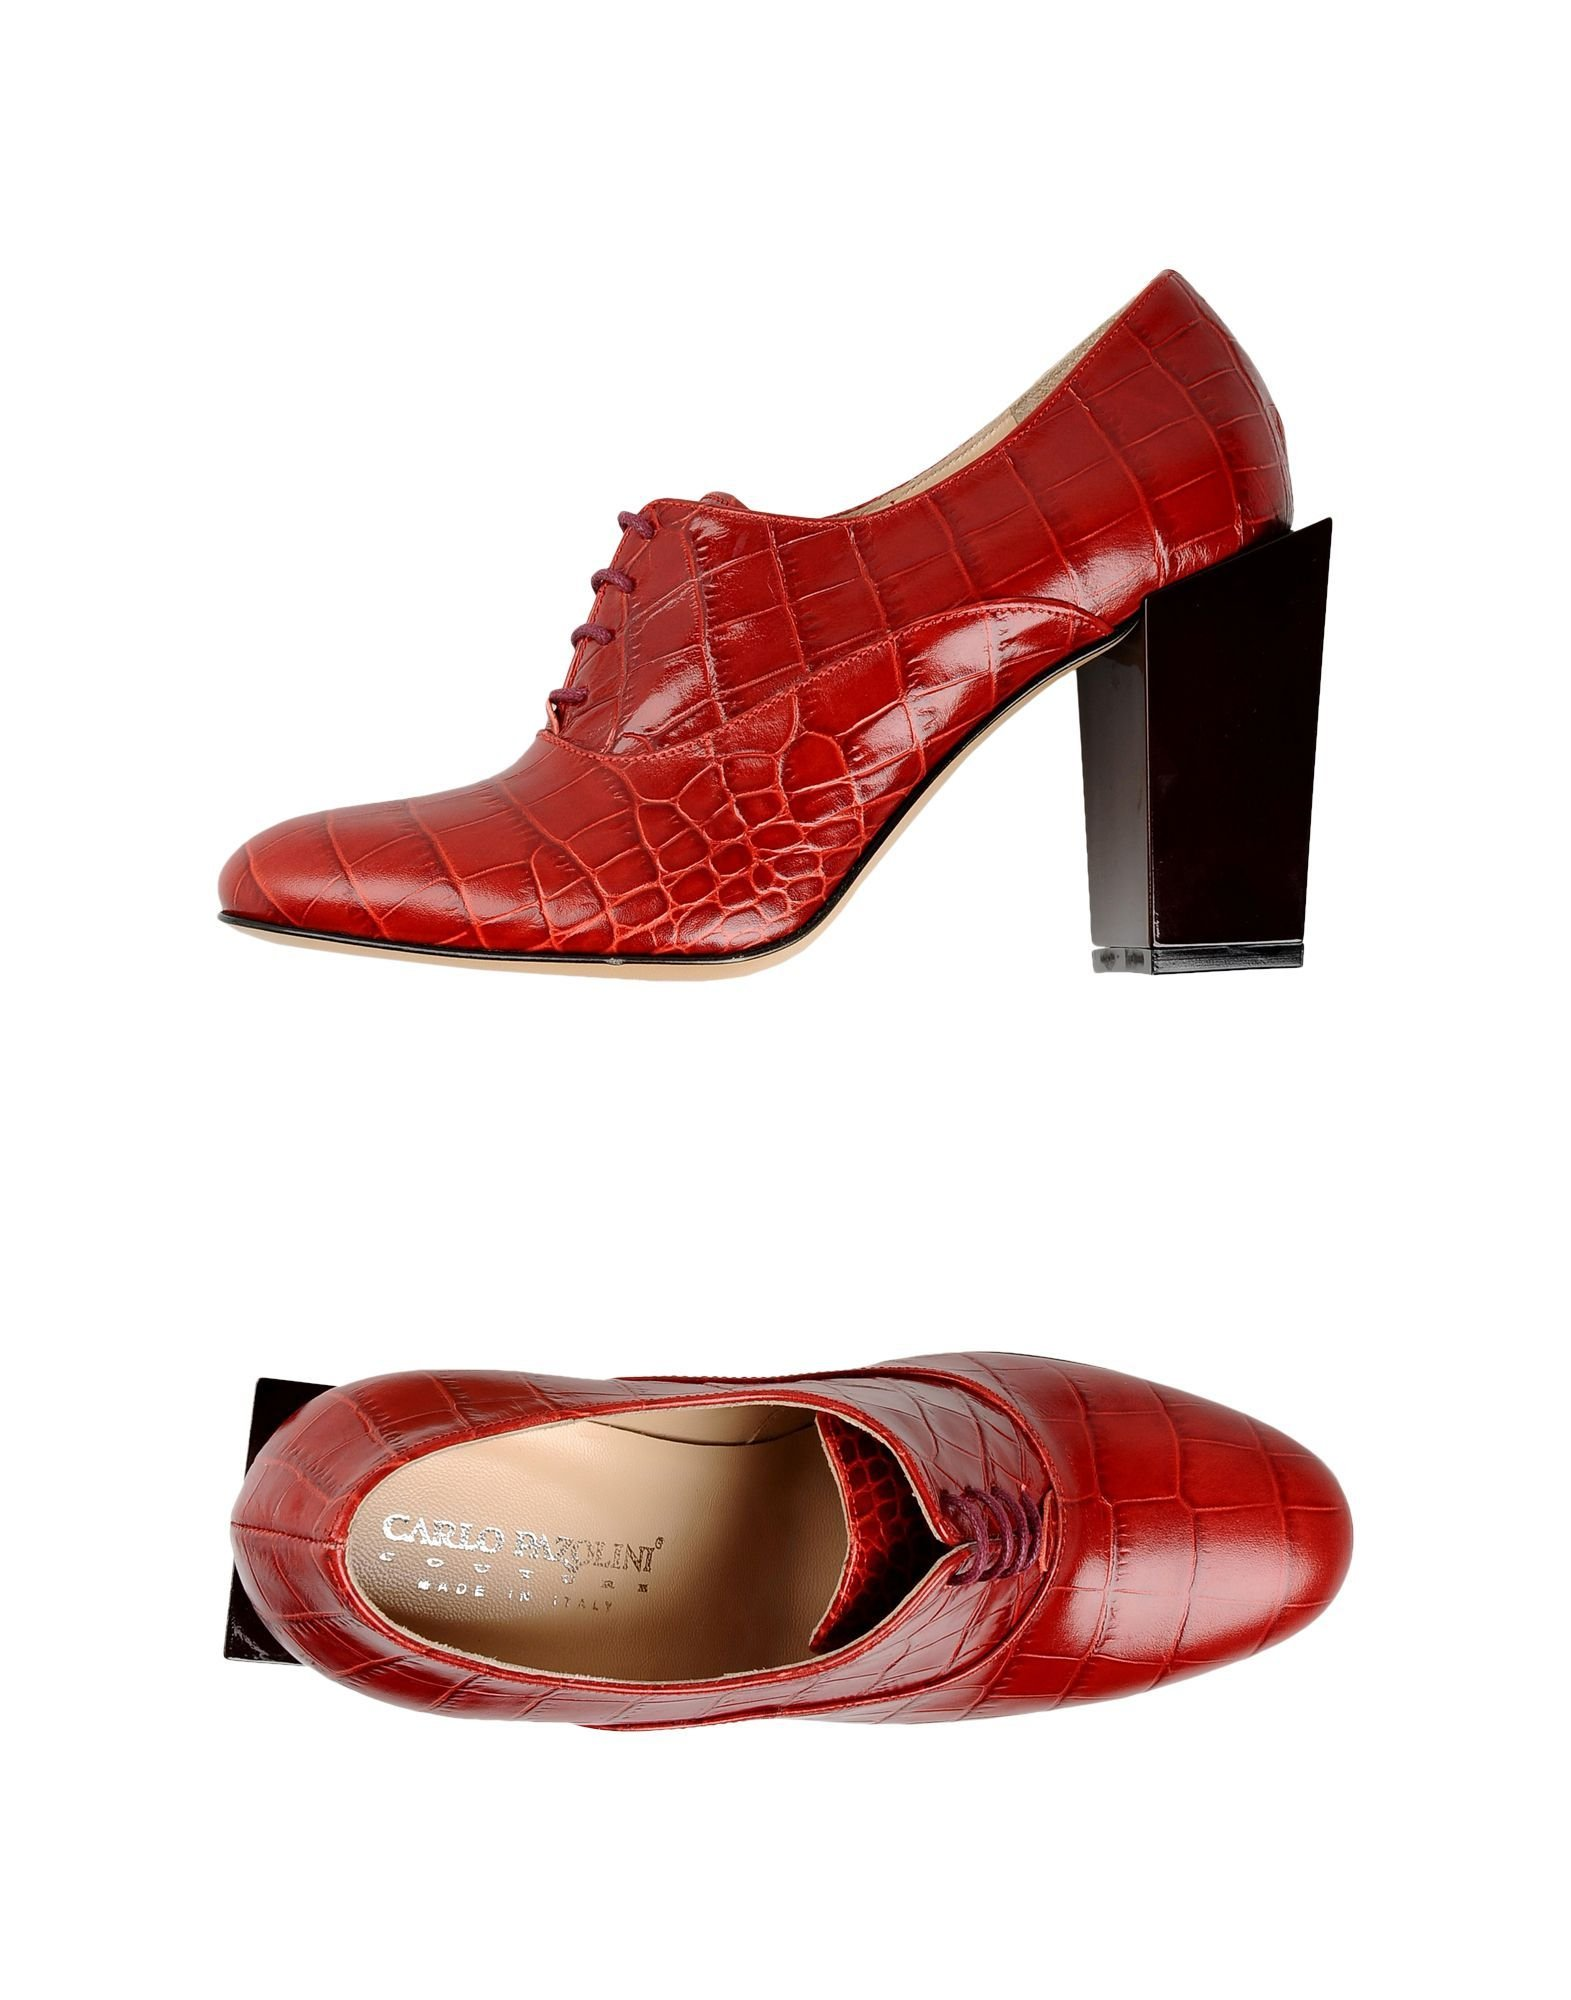 Red Lace-Up Shoes for Women, Carlo Pazolini